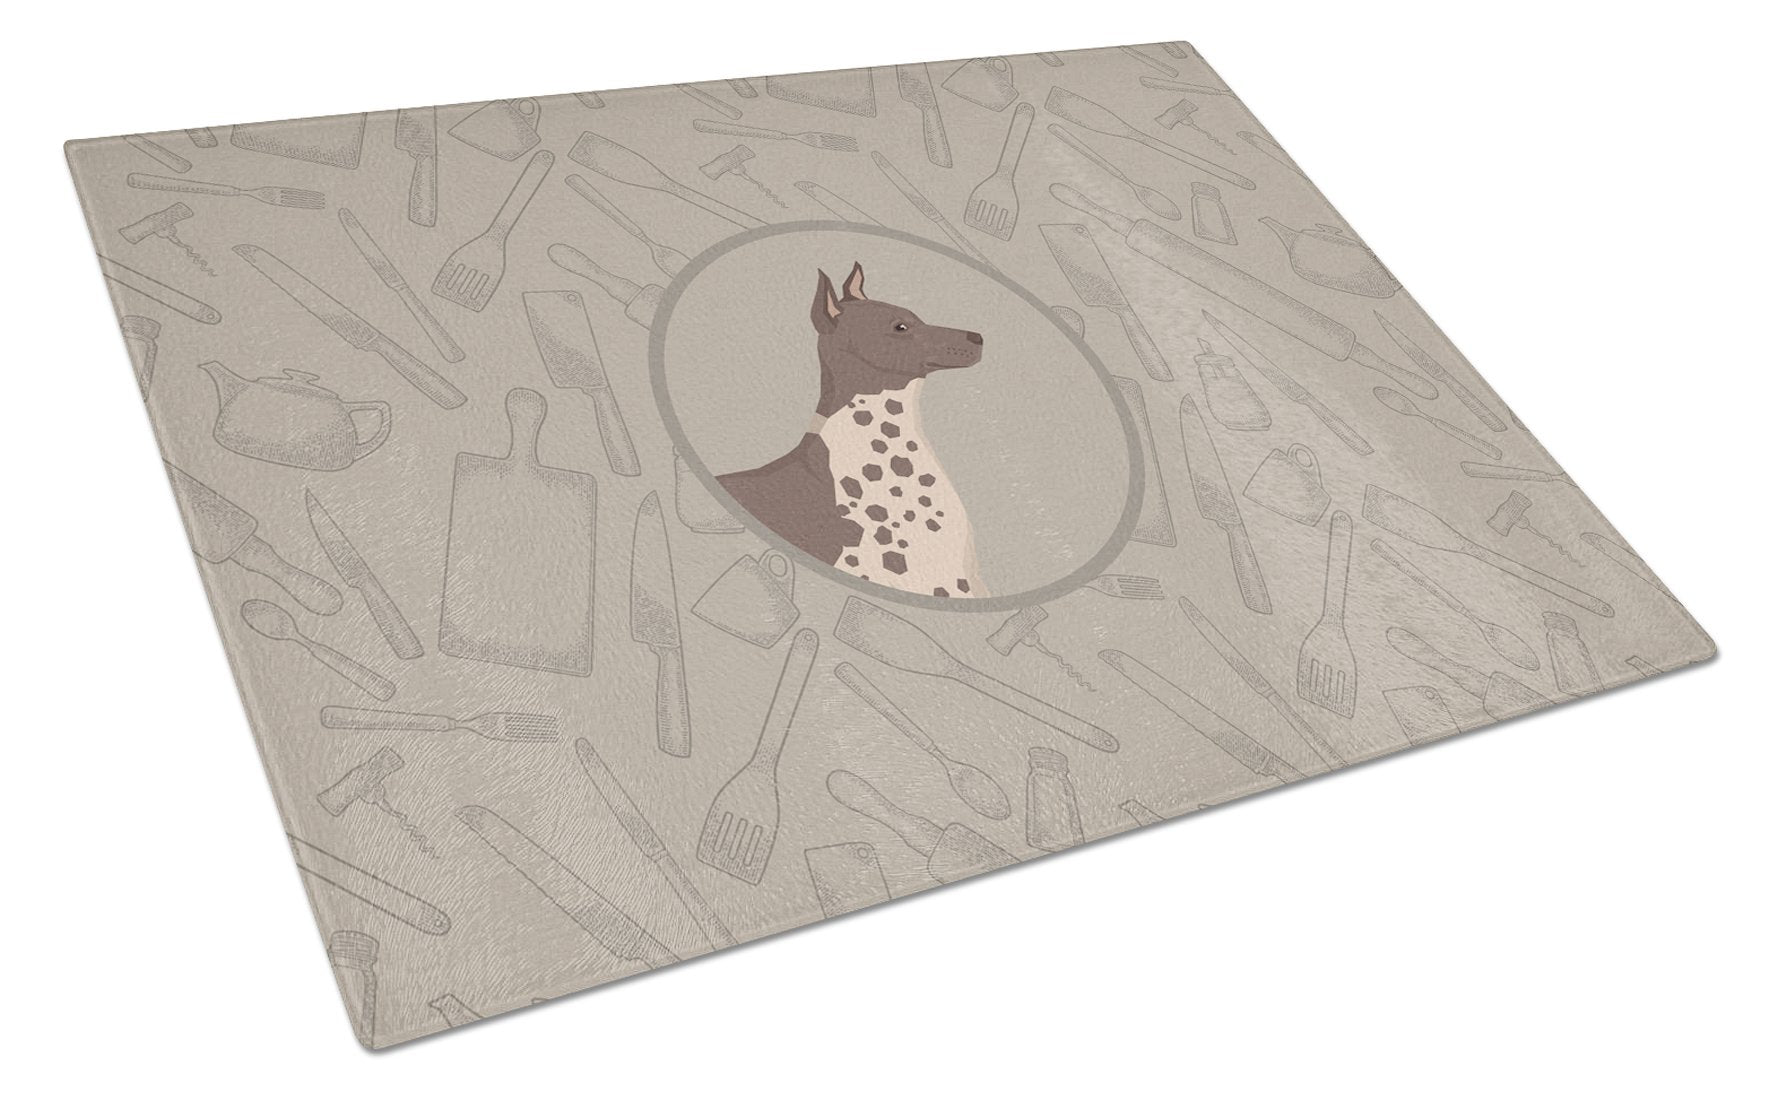 American Hairless Terrier In the Kitchen Glass Cutting Board Large CK2161LCB by Caroline's Treasures